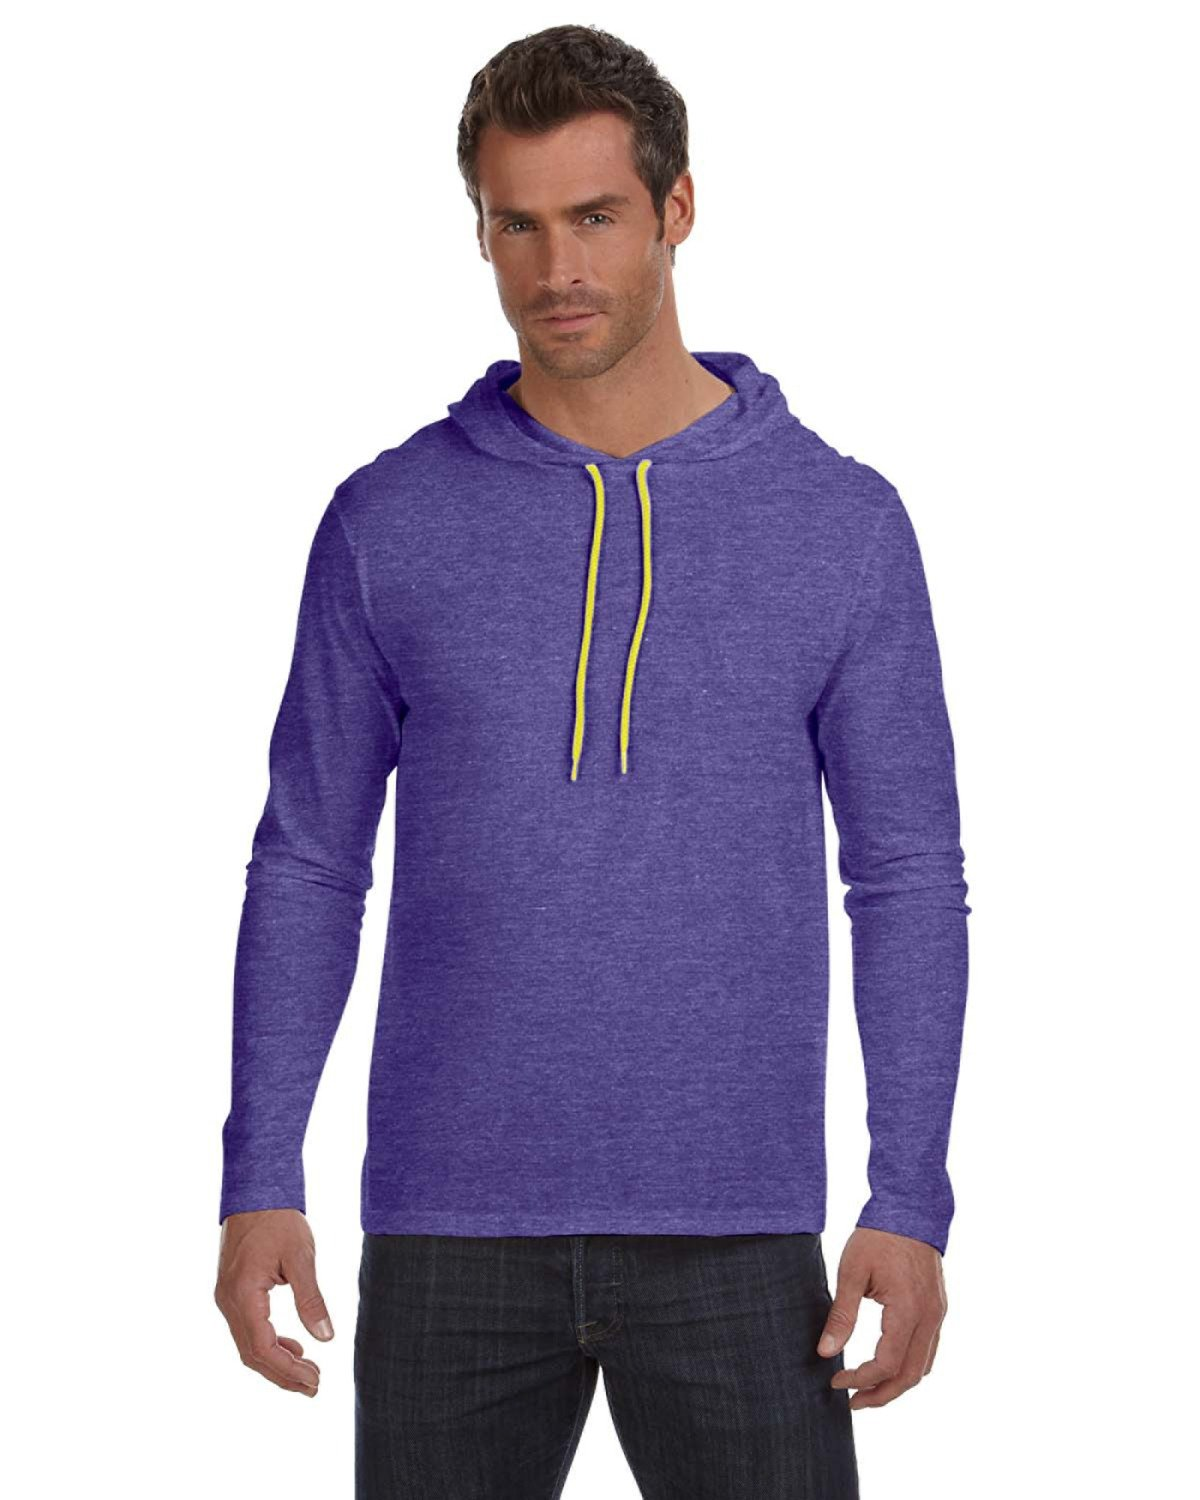 Anvil Adult Lightweight Long-Sleeve Hooded T-Shirt HTH PRP/ NEO YEL